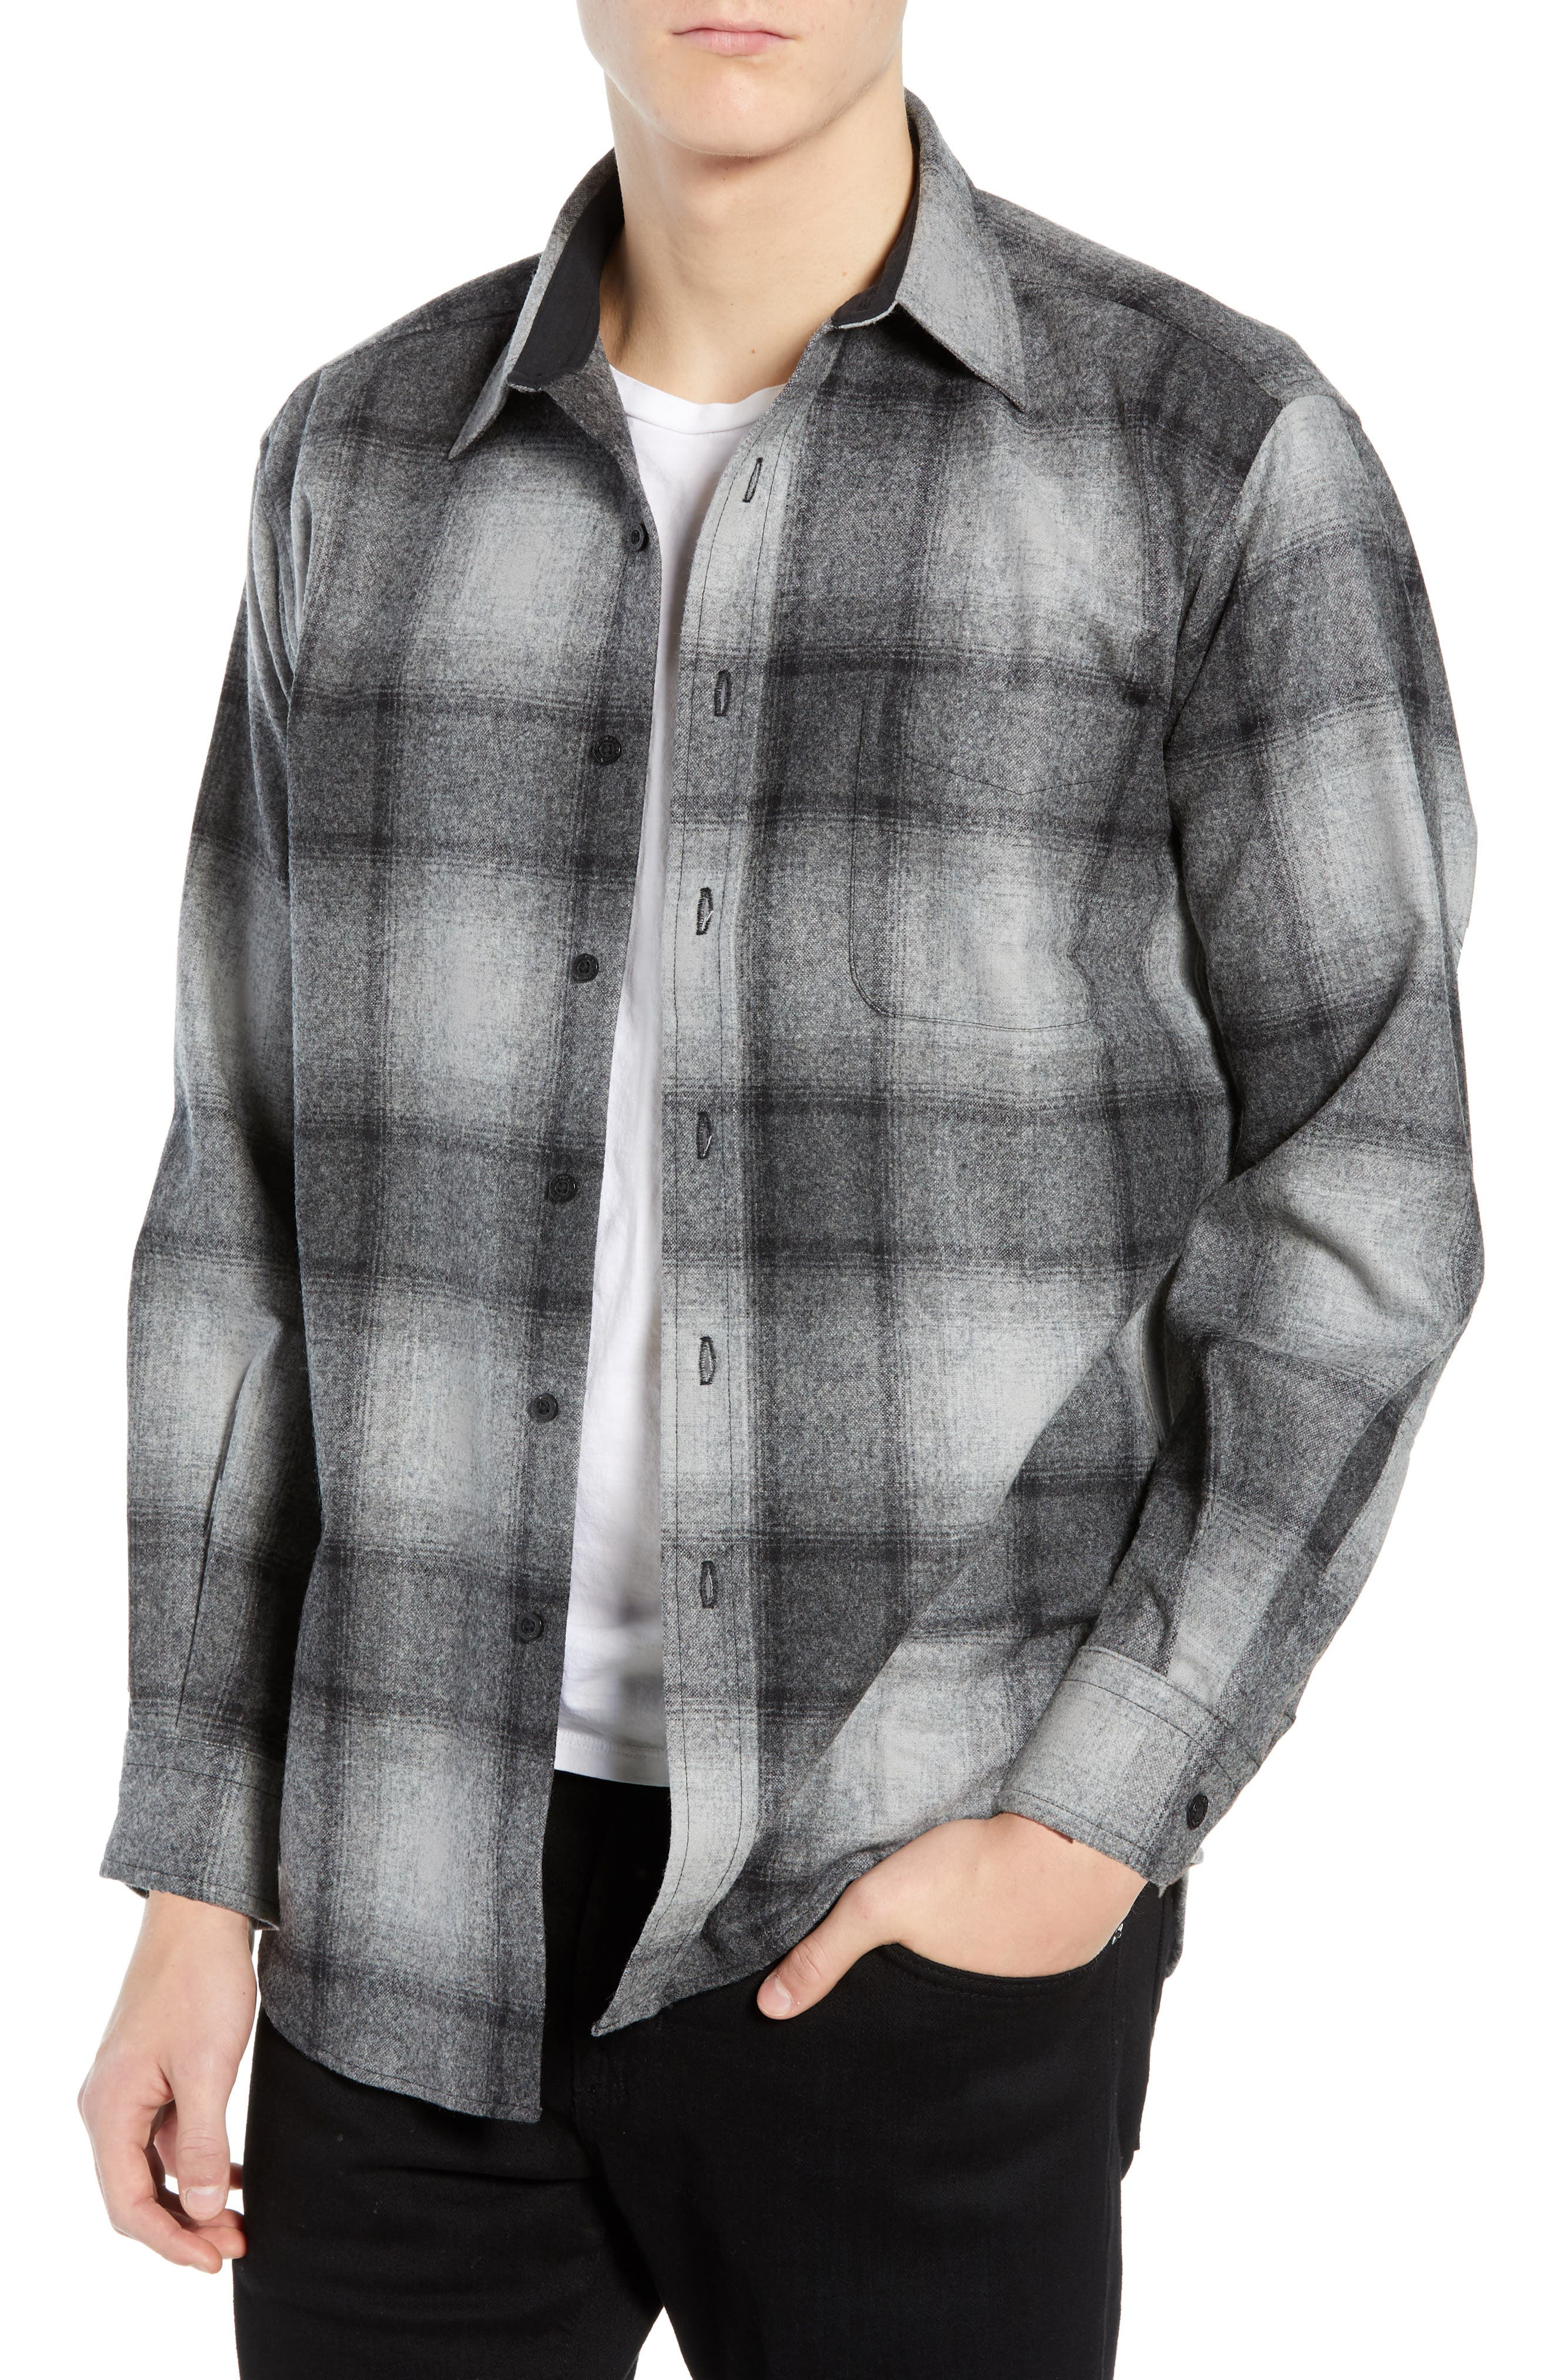 Lodge Wool Flannel Shirt,                         Main,                         color, BLACK/ GREY MIX OMBRE